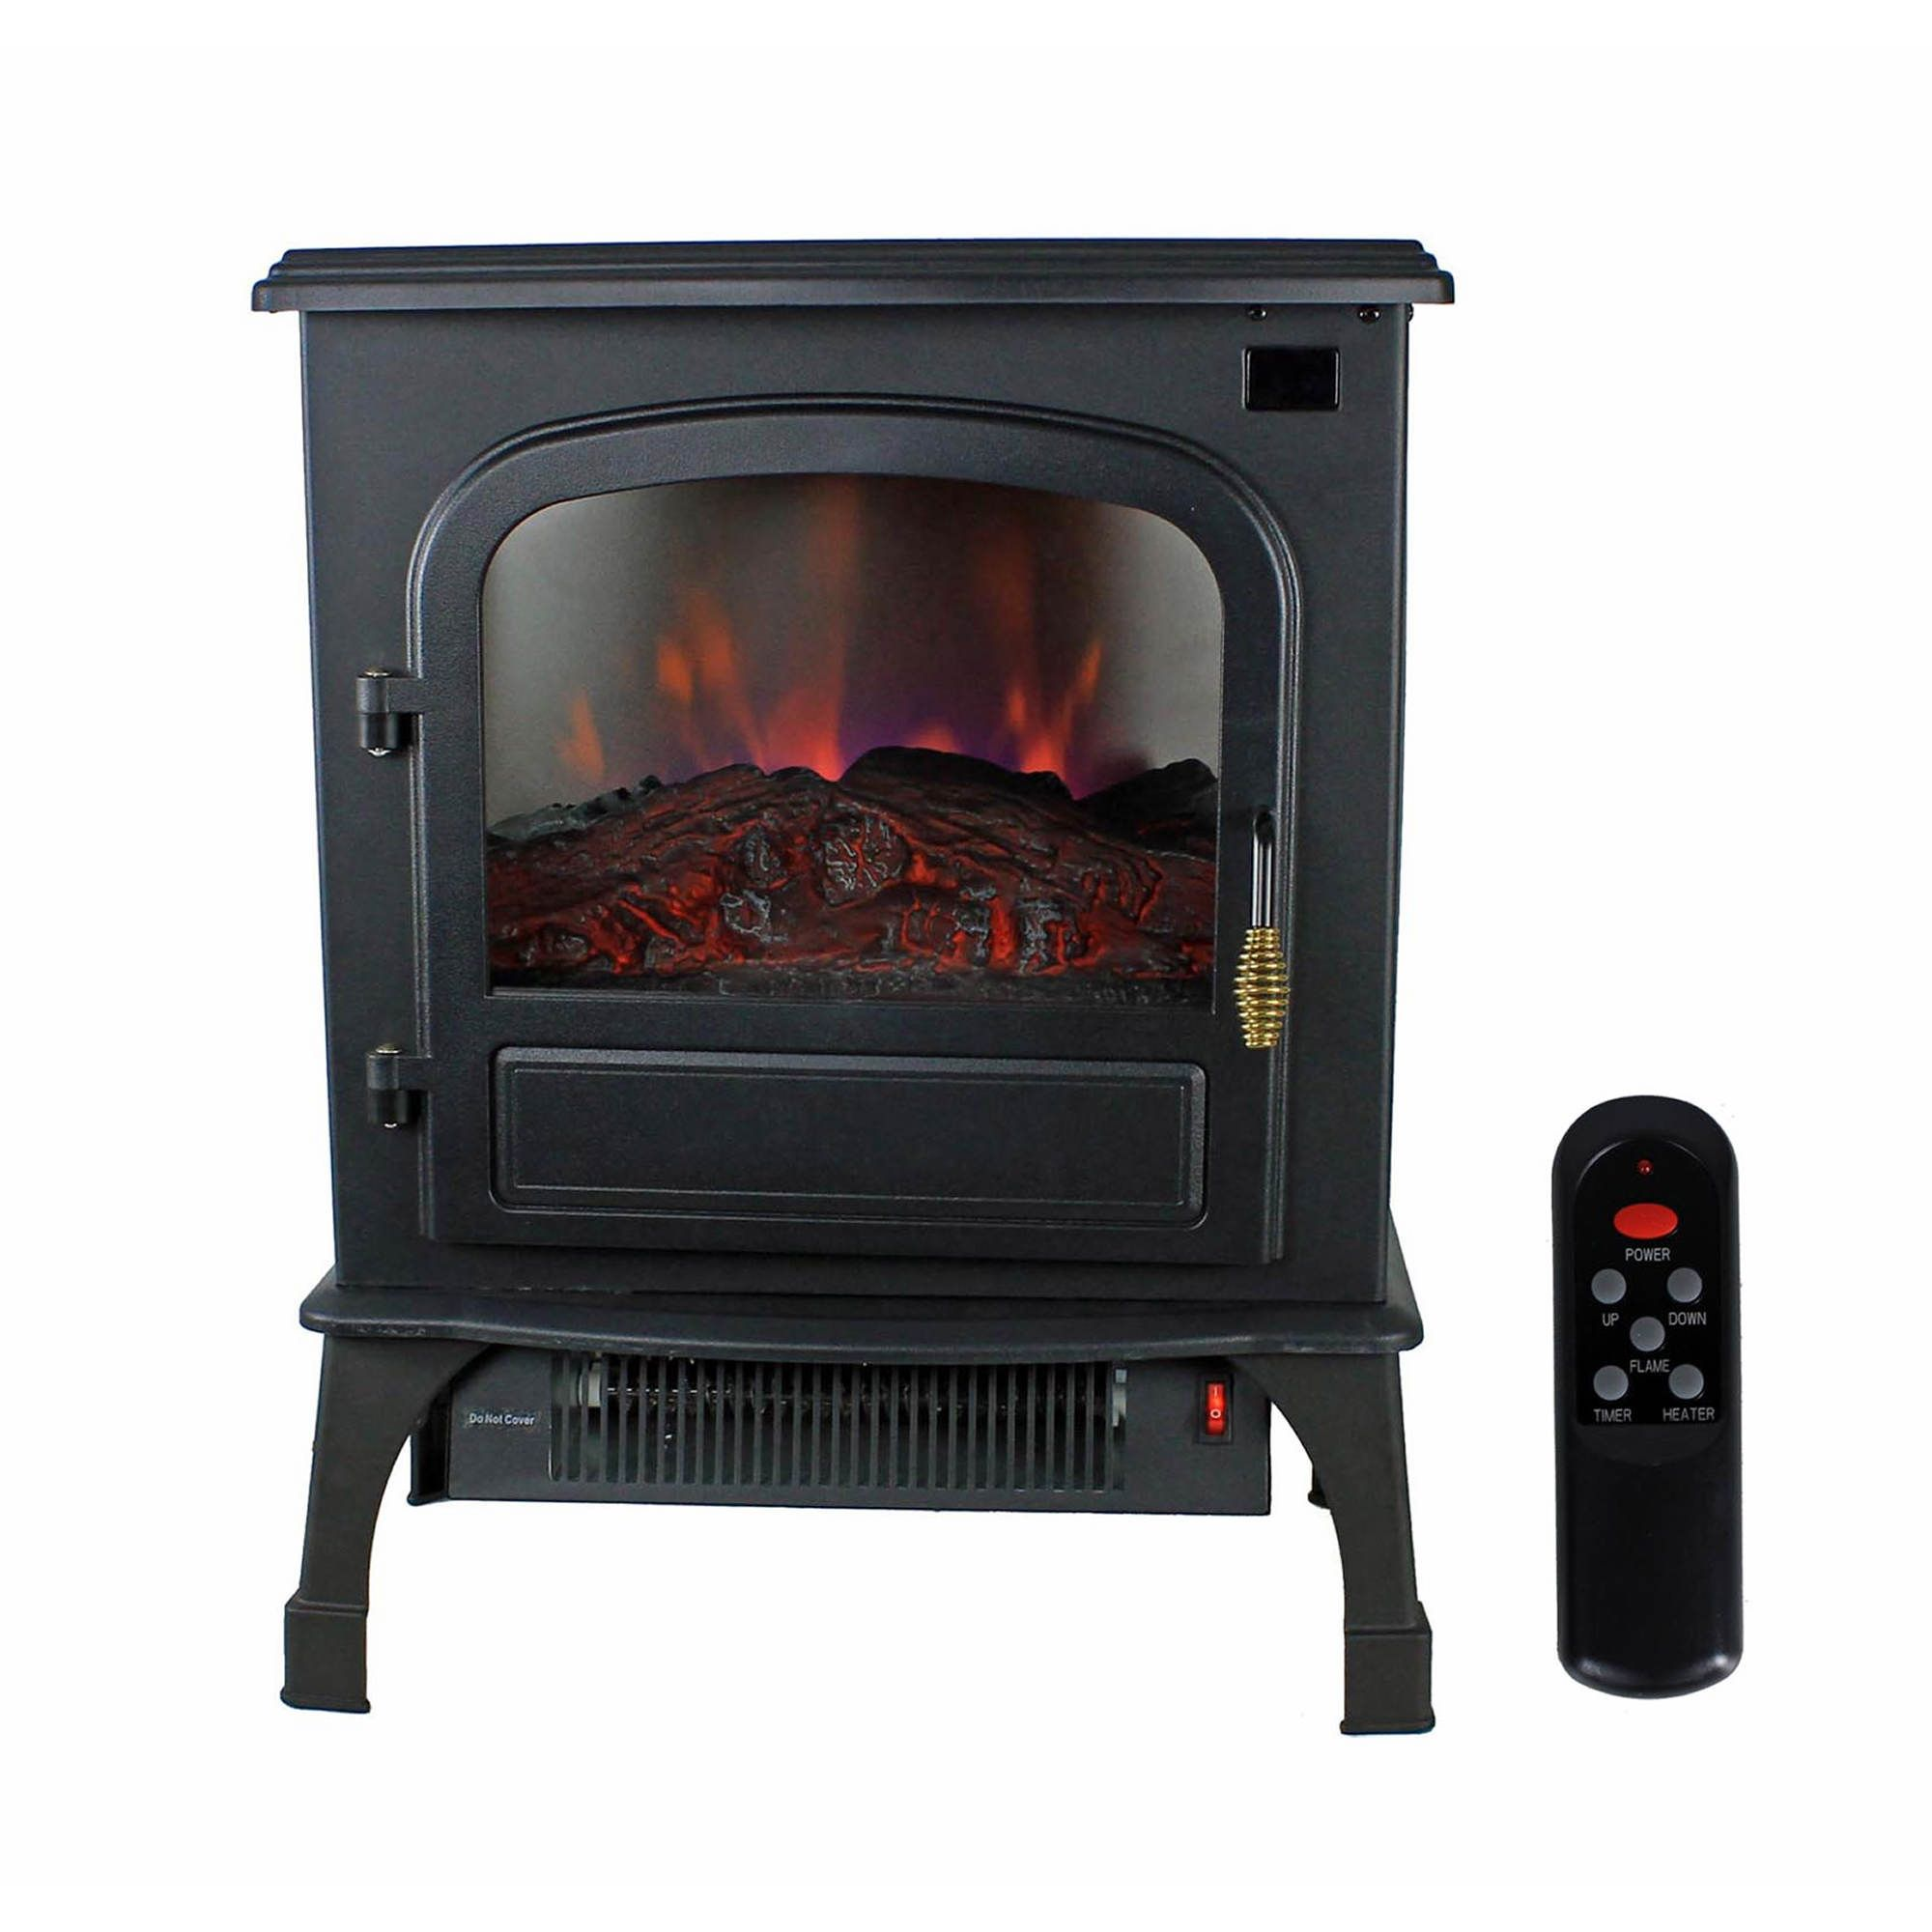 Warm Living 1,500W Infrared Deluxe Home Electric Fireplace